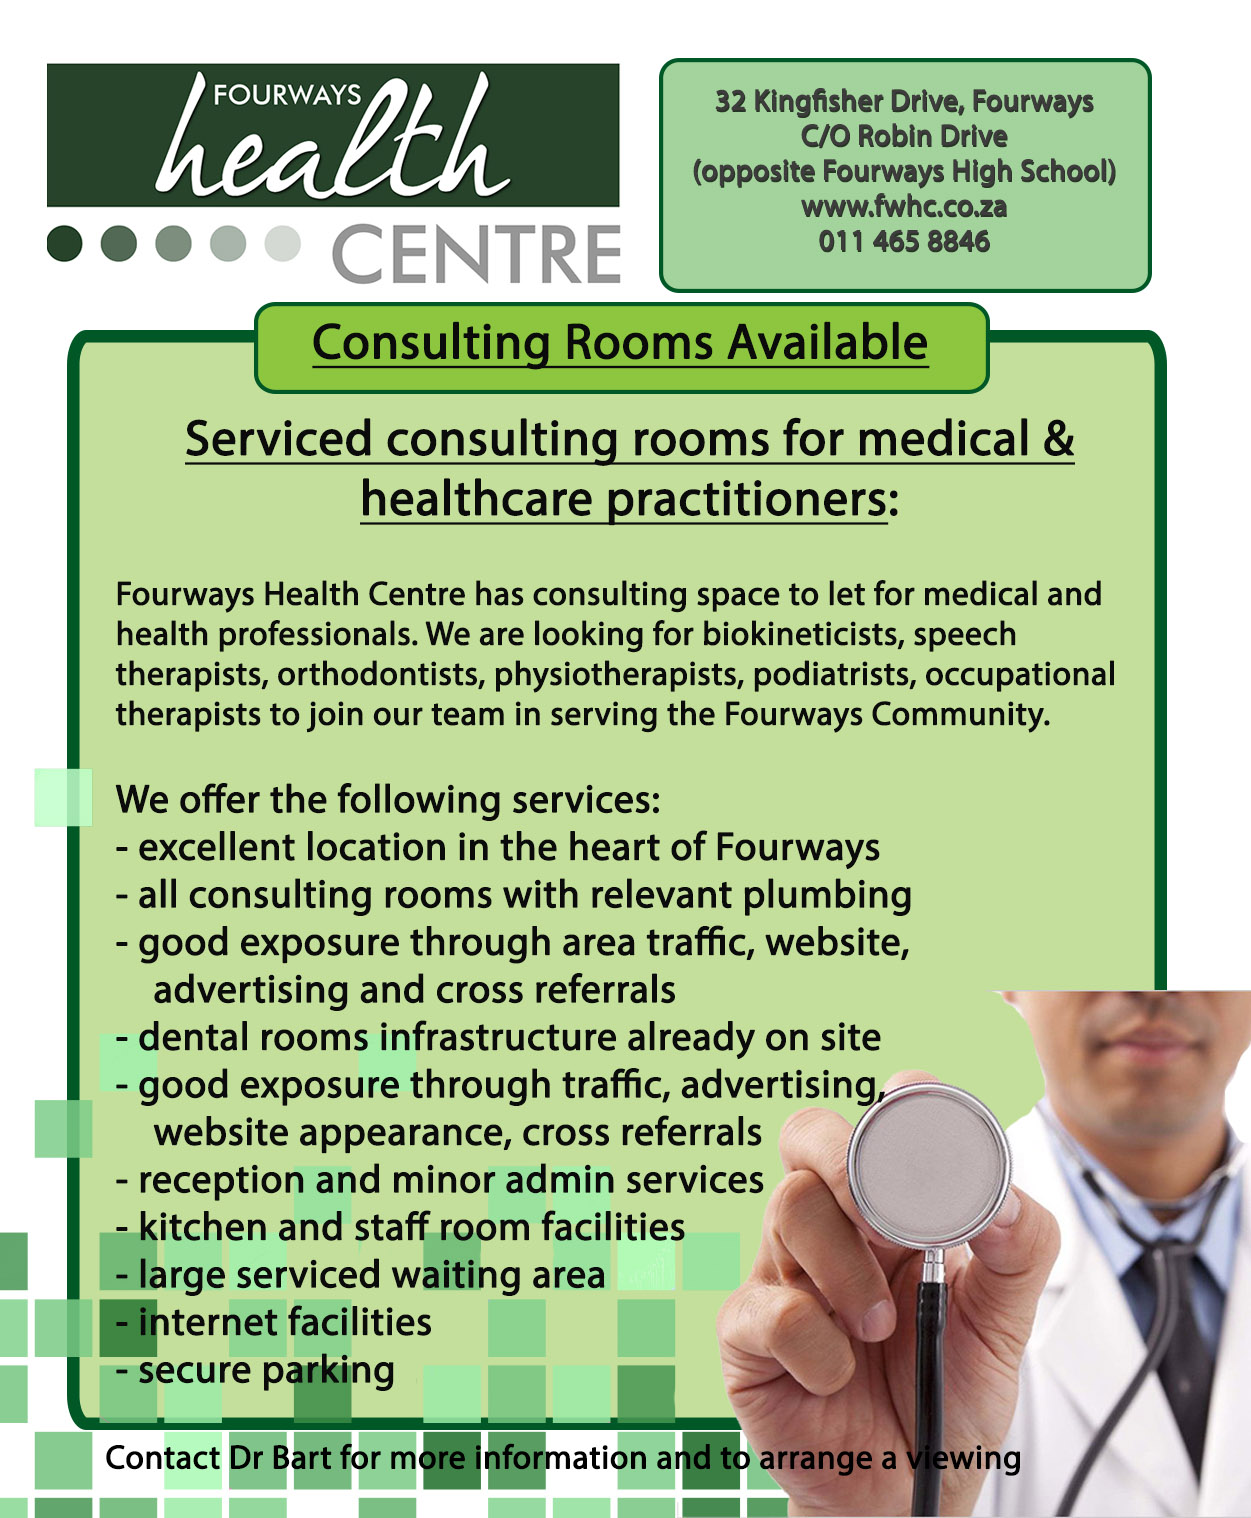 FWHC consulting rooms to let1